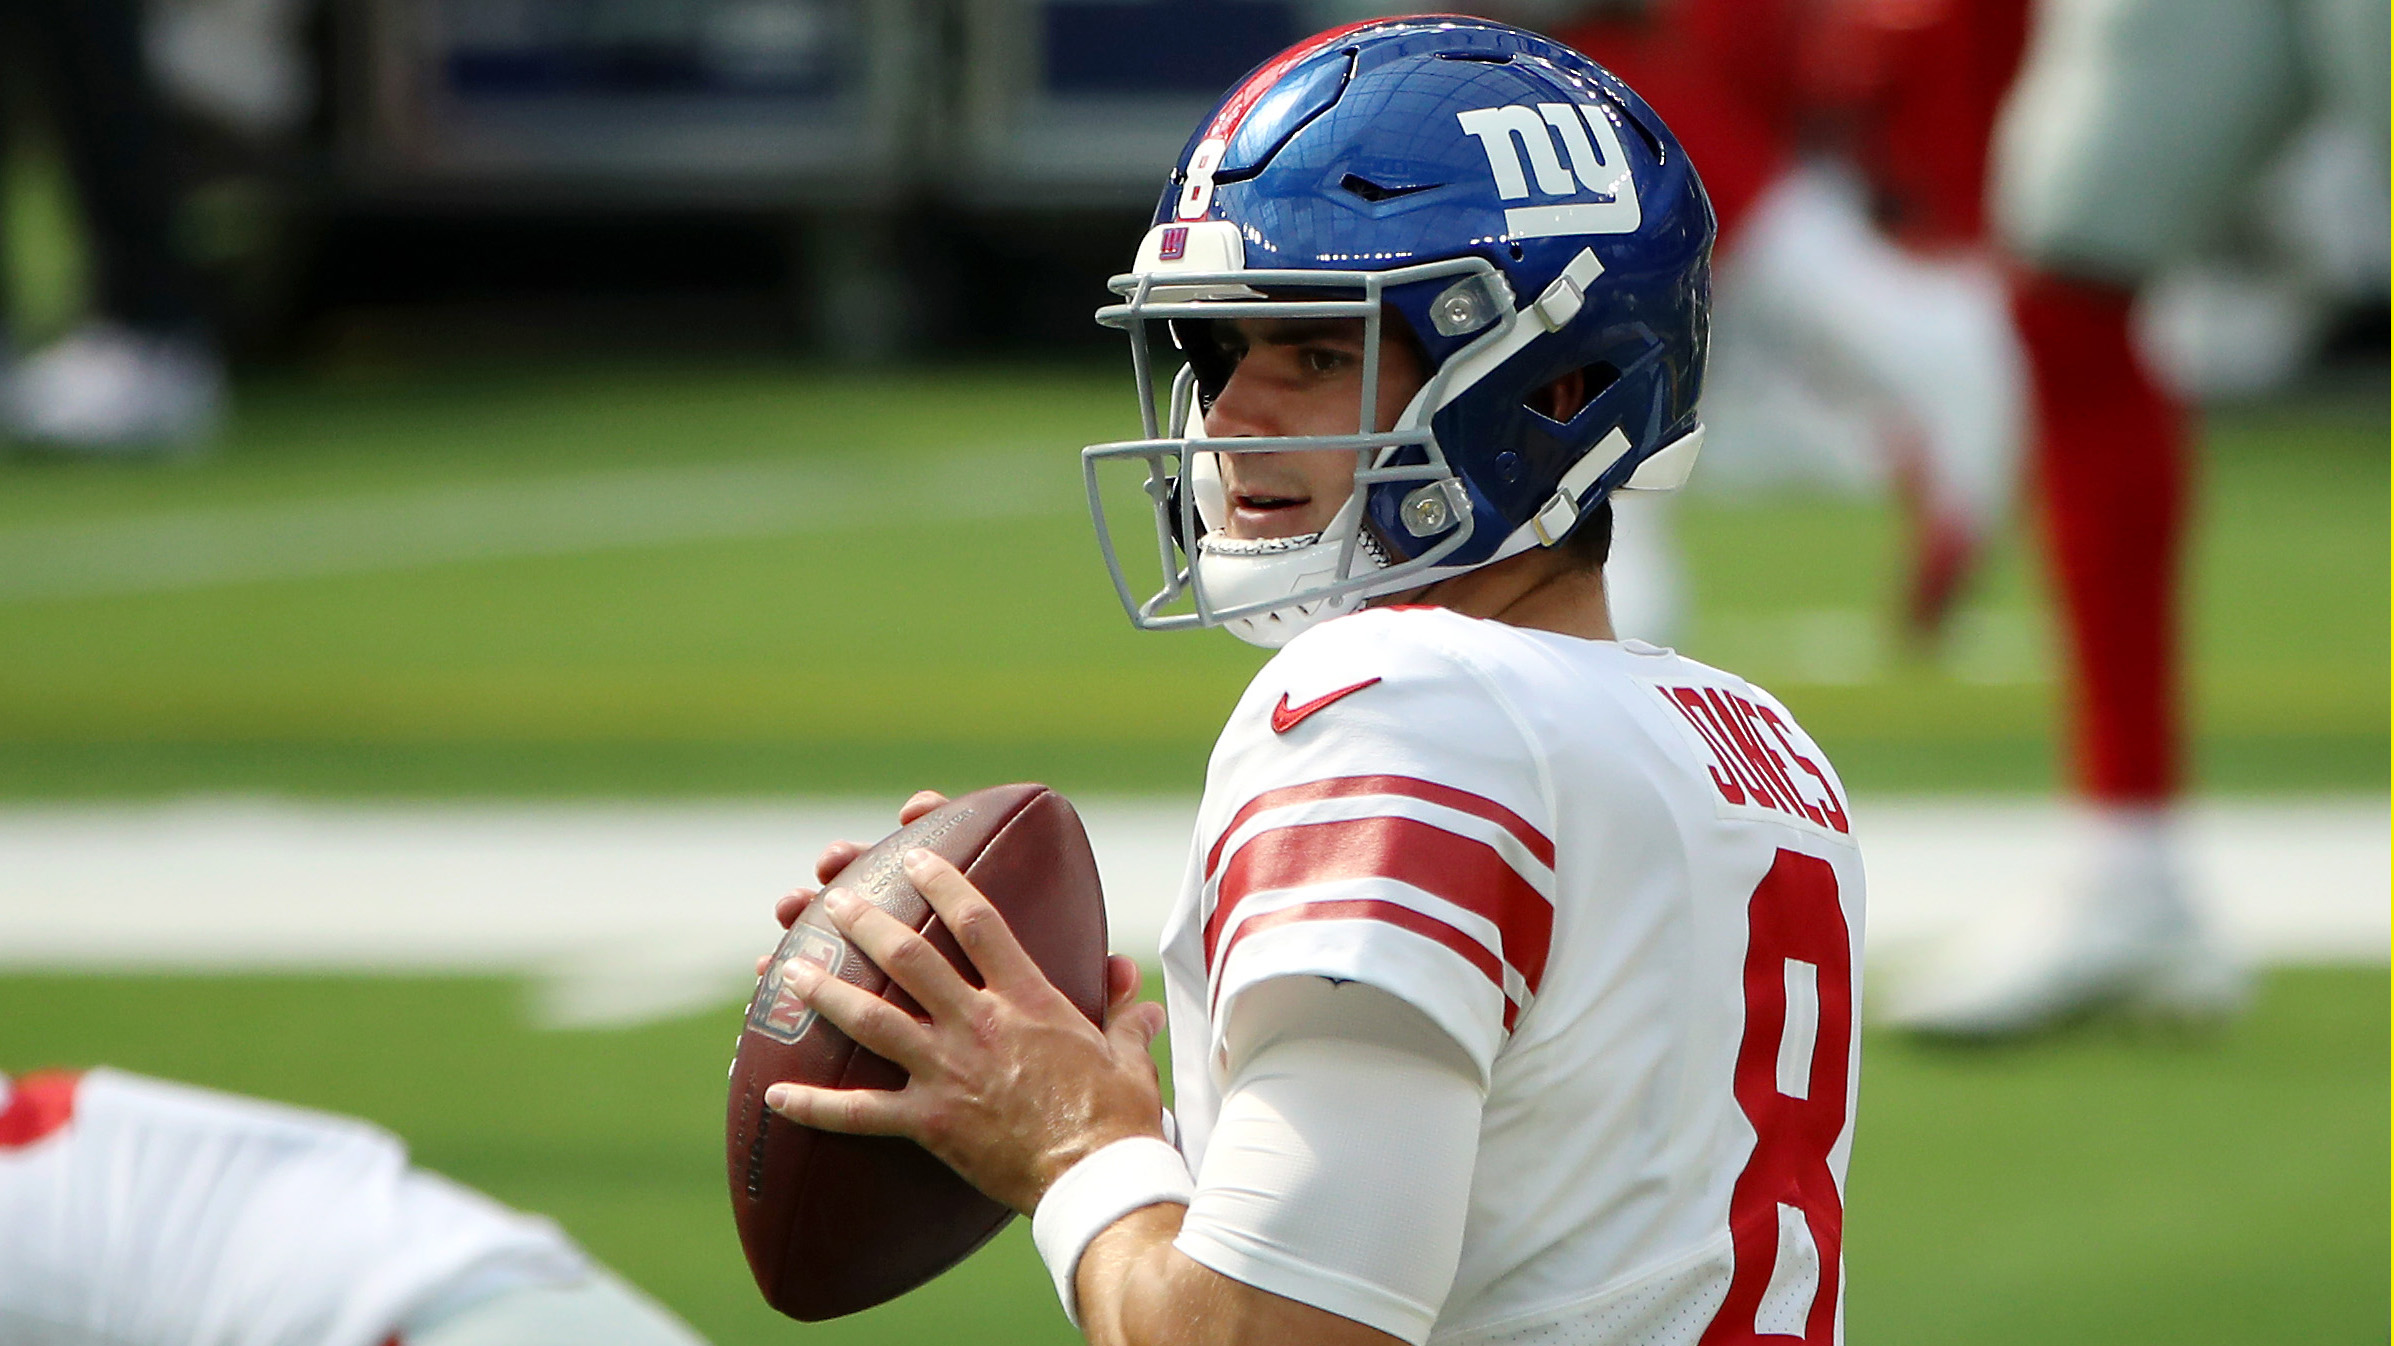 Judge: Maskless Daniel Jones and Other Giants Players to Be Handled Internally